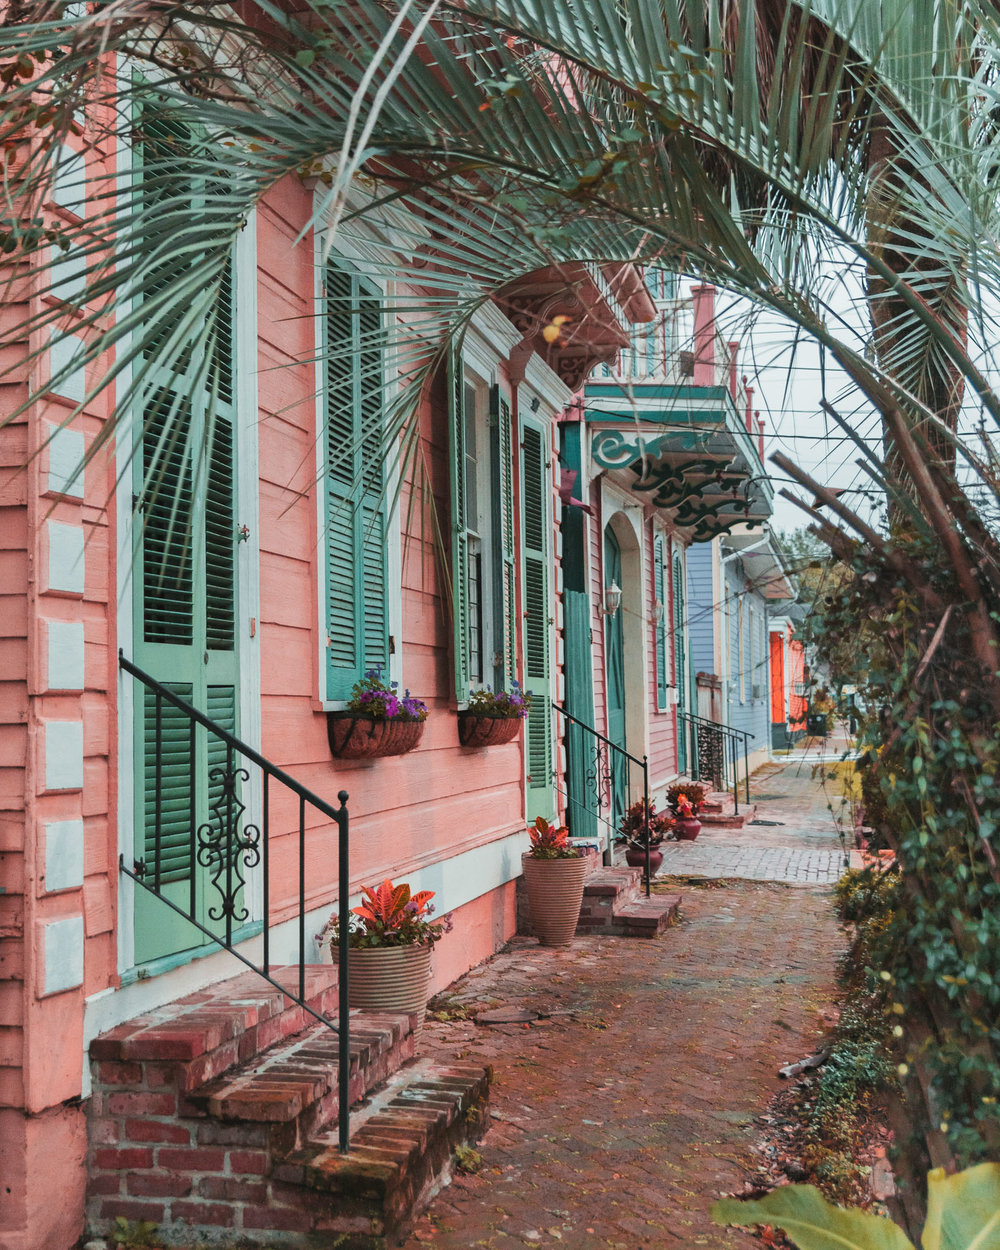 Colorful houses in the Garden District // The Most Instagrammable Spots in New Orleans // #readysetjetset www.readysetjetset.net